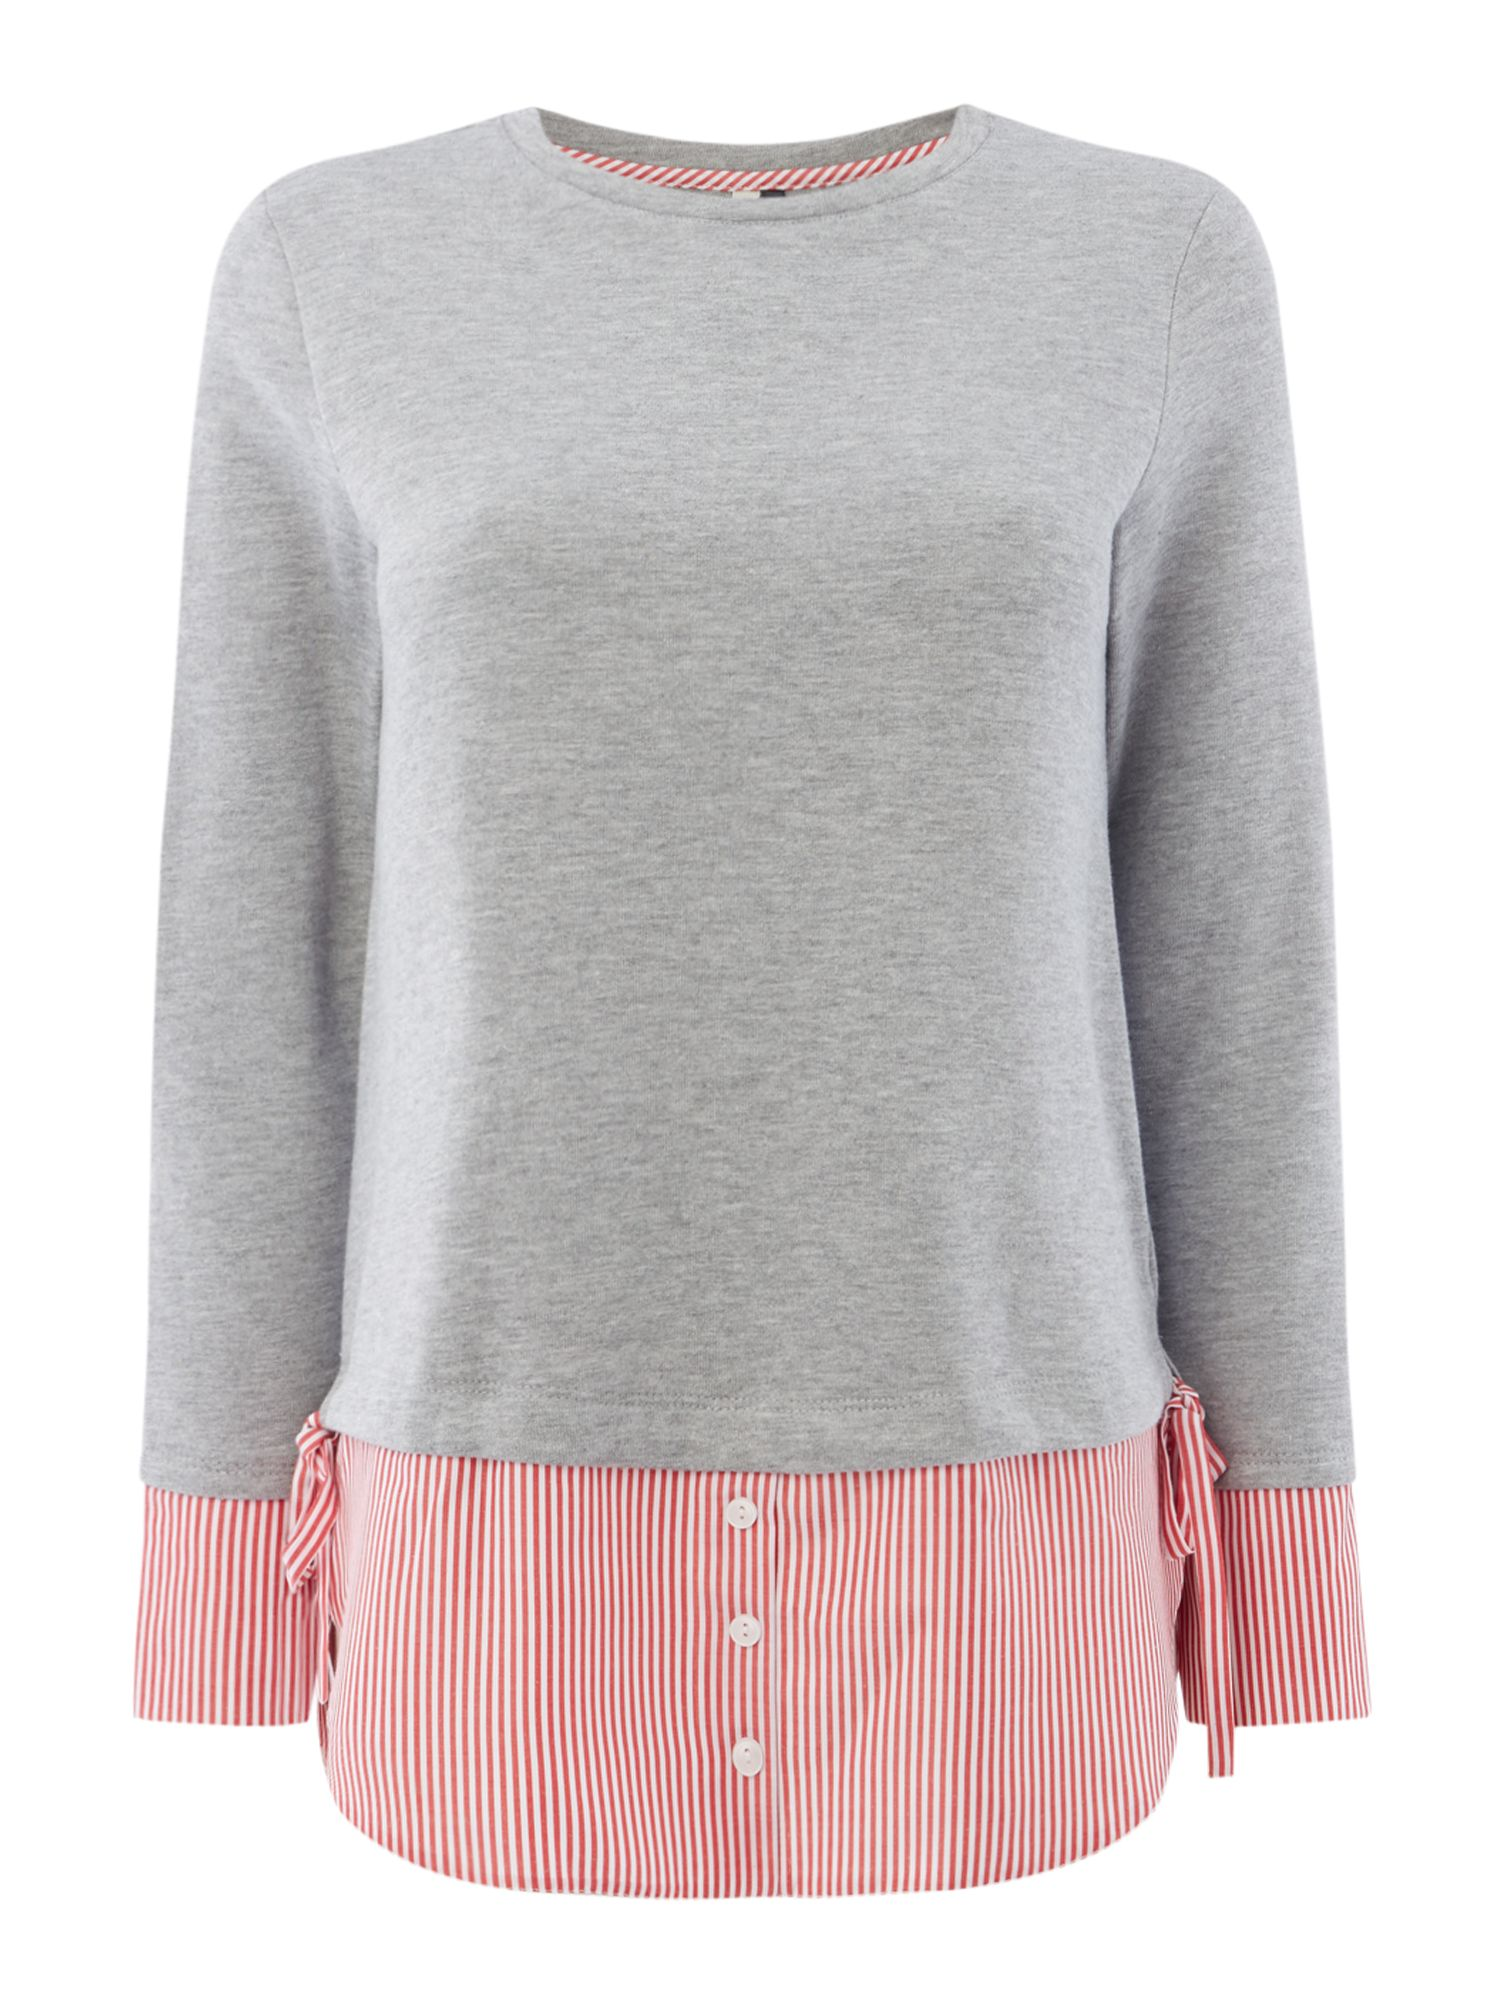 Maison De Nimes Ticking Stripe Mix Sweat, Grey